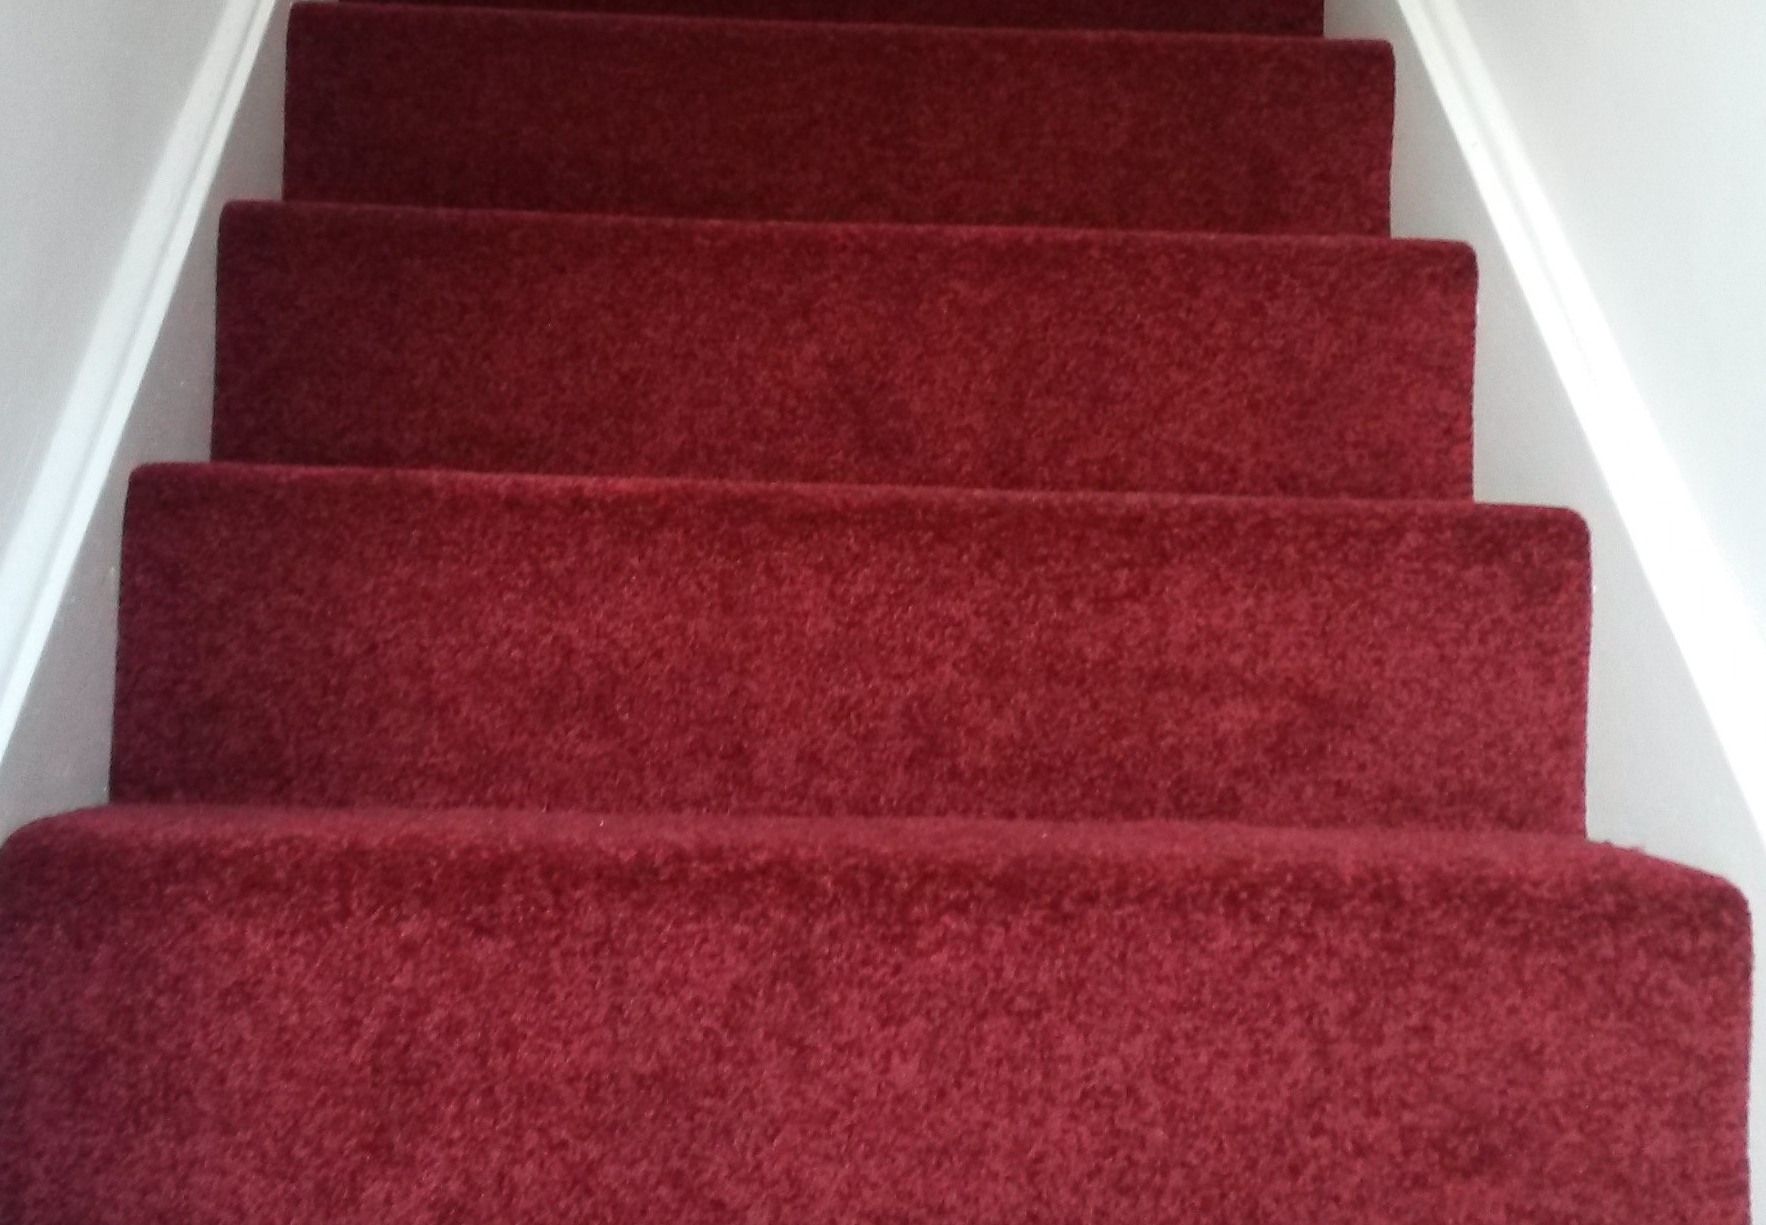 High quality stair carpet pointing up showing the first four runs, installed by Garry Joy